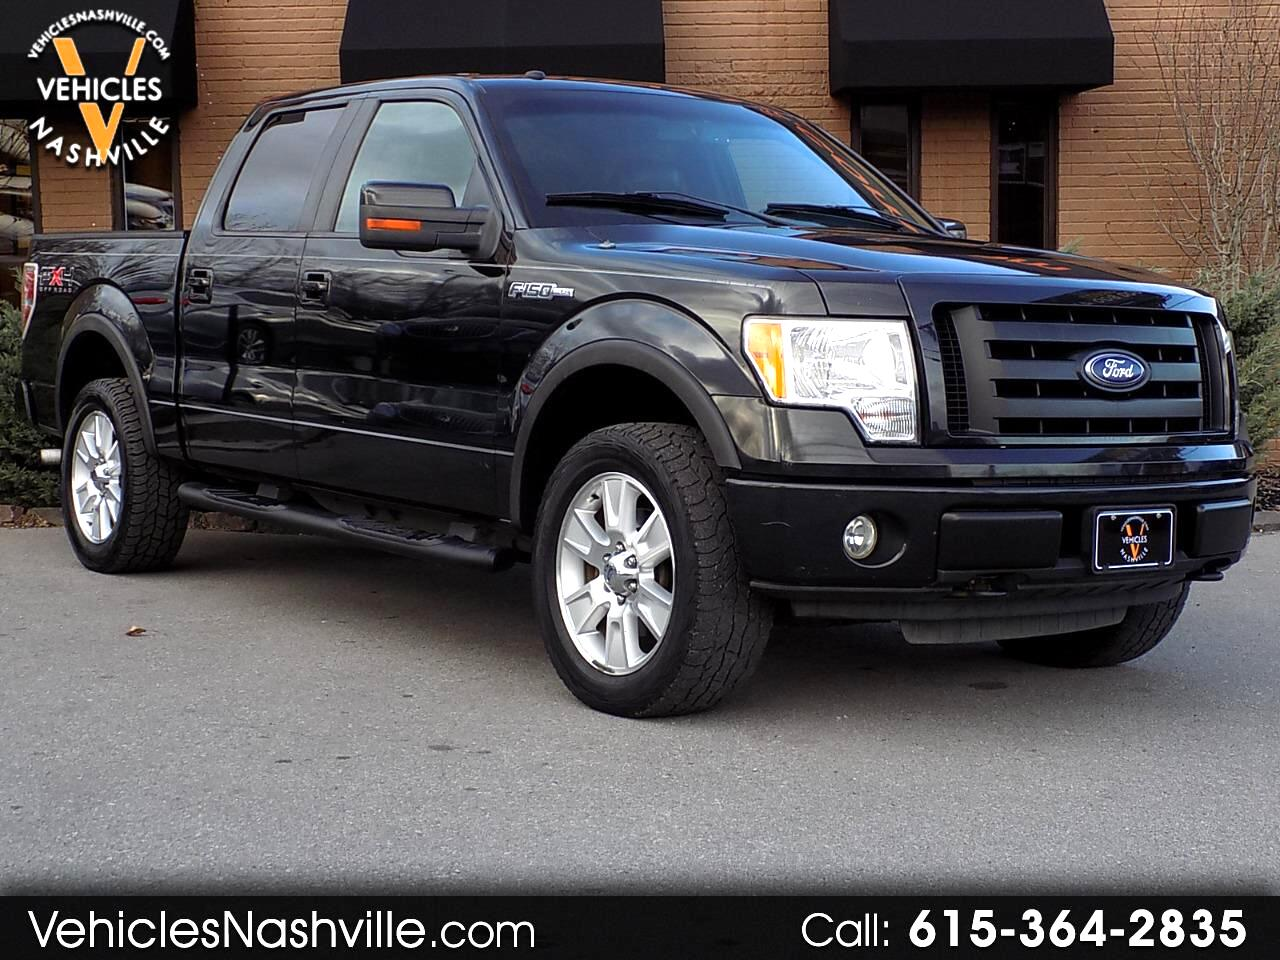 2010 Ford F-150 FX4 4WD